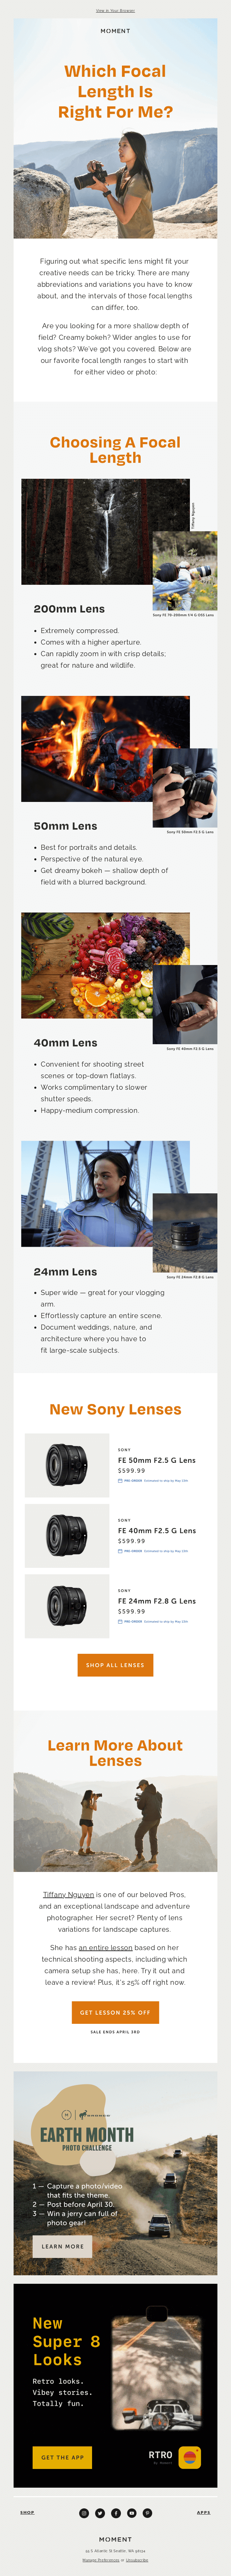 New to using a big camera? Think about your lens, too.